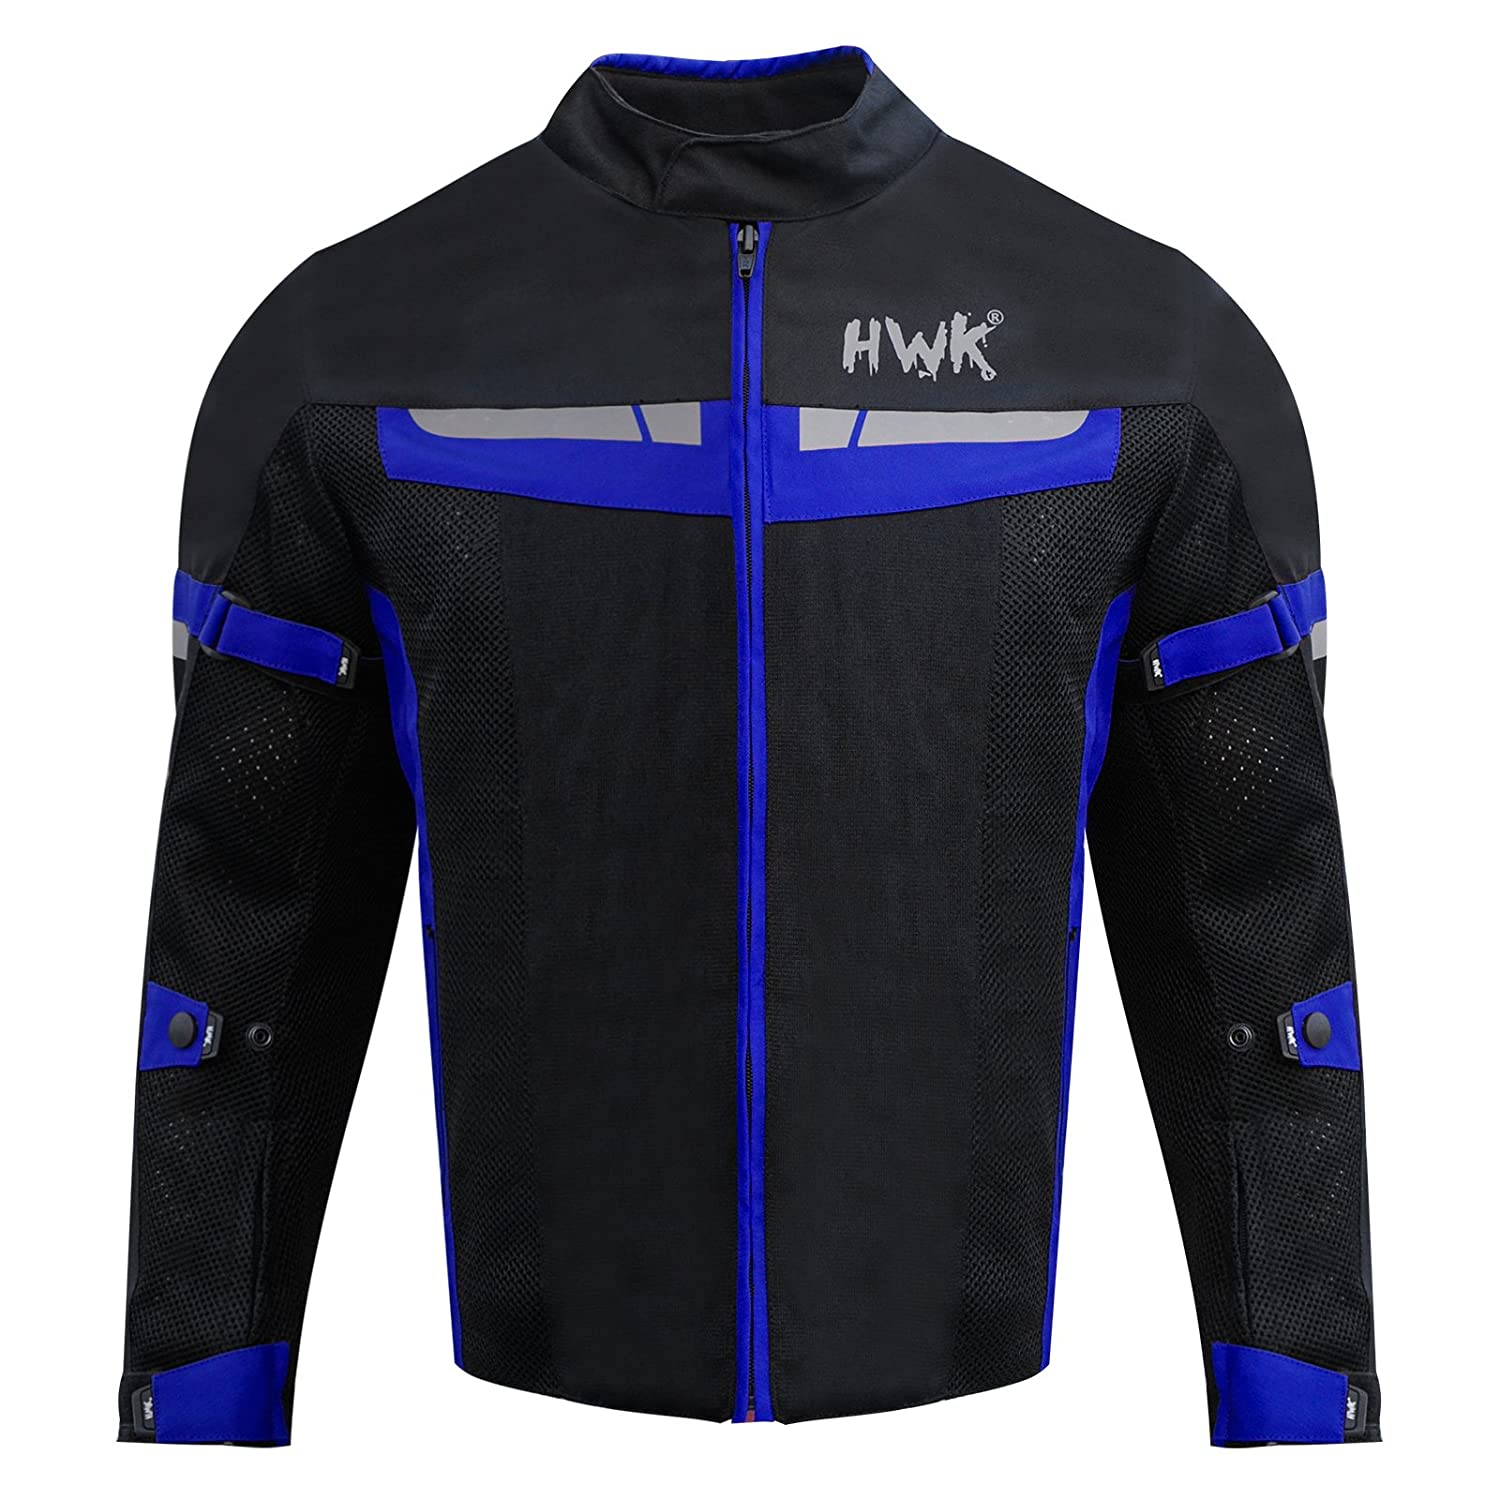 HWK Mesh Motorcycle Jacket Riding Air Motorbike Jacket Biker CE Armored Breathable (Small, Red) HHR HWK-MS1